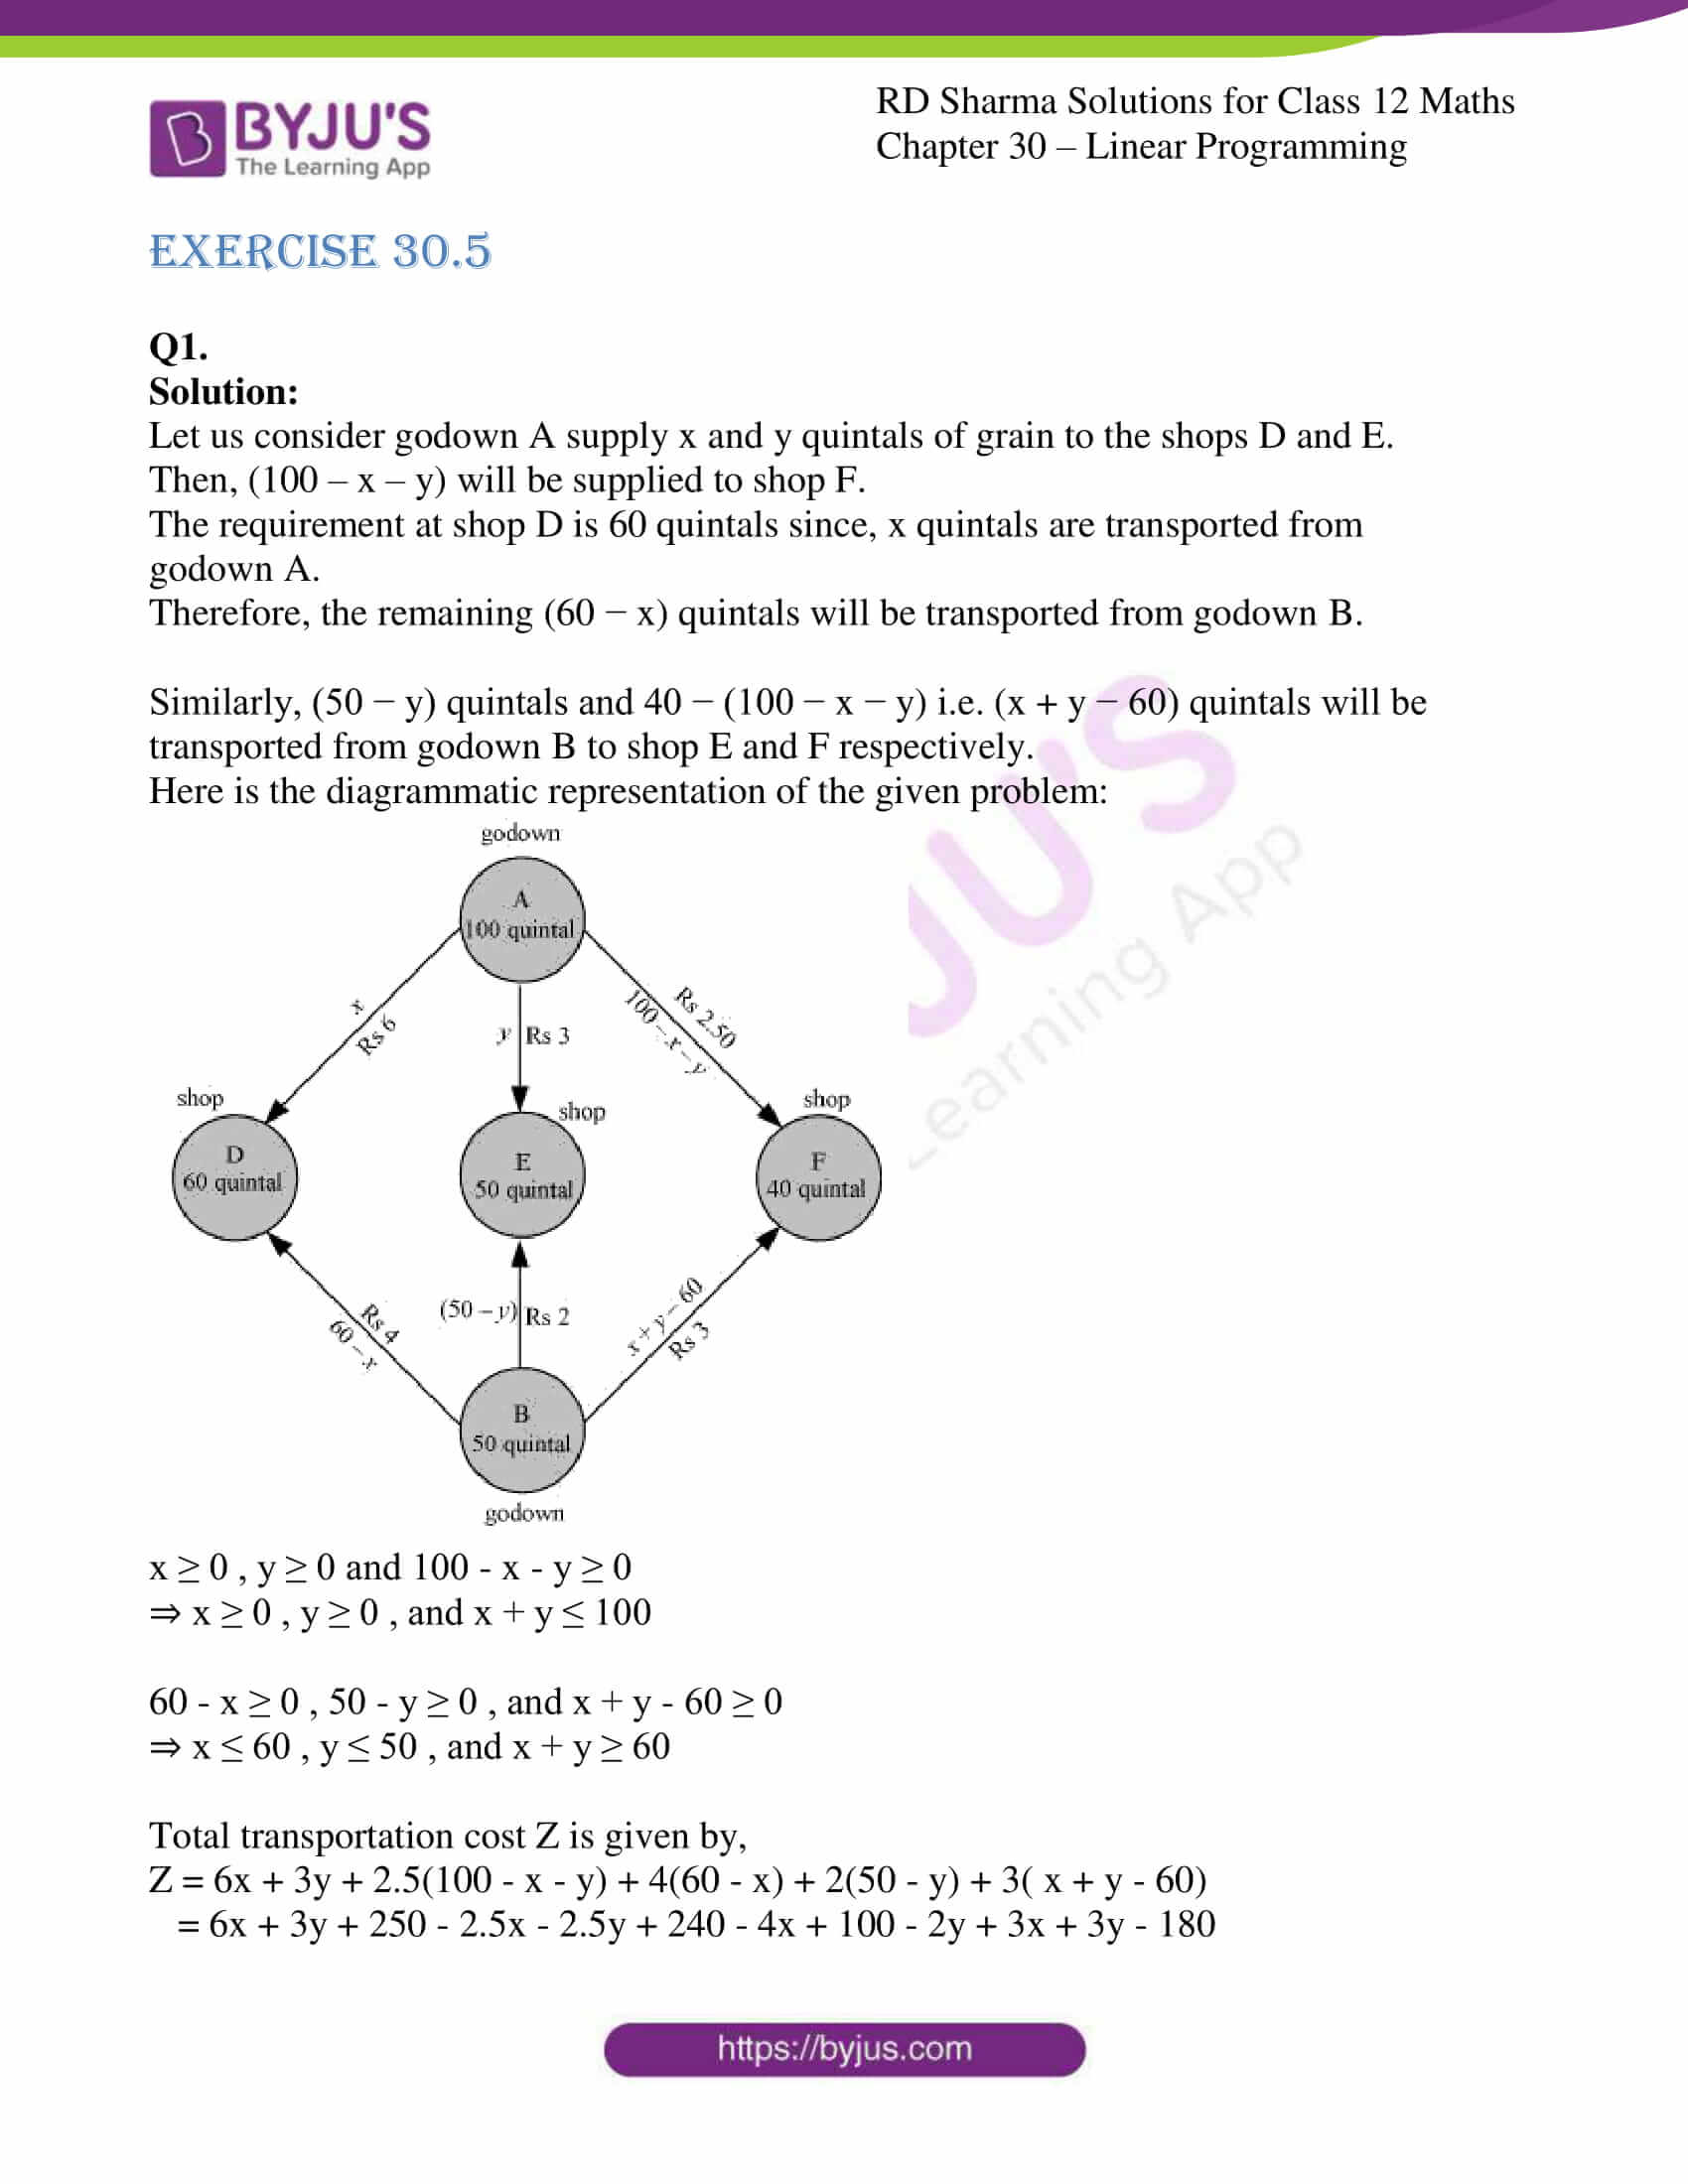 rd sharma solutions for class 12 maths chapter 30 ex 5 1